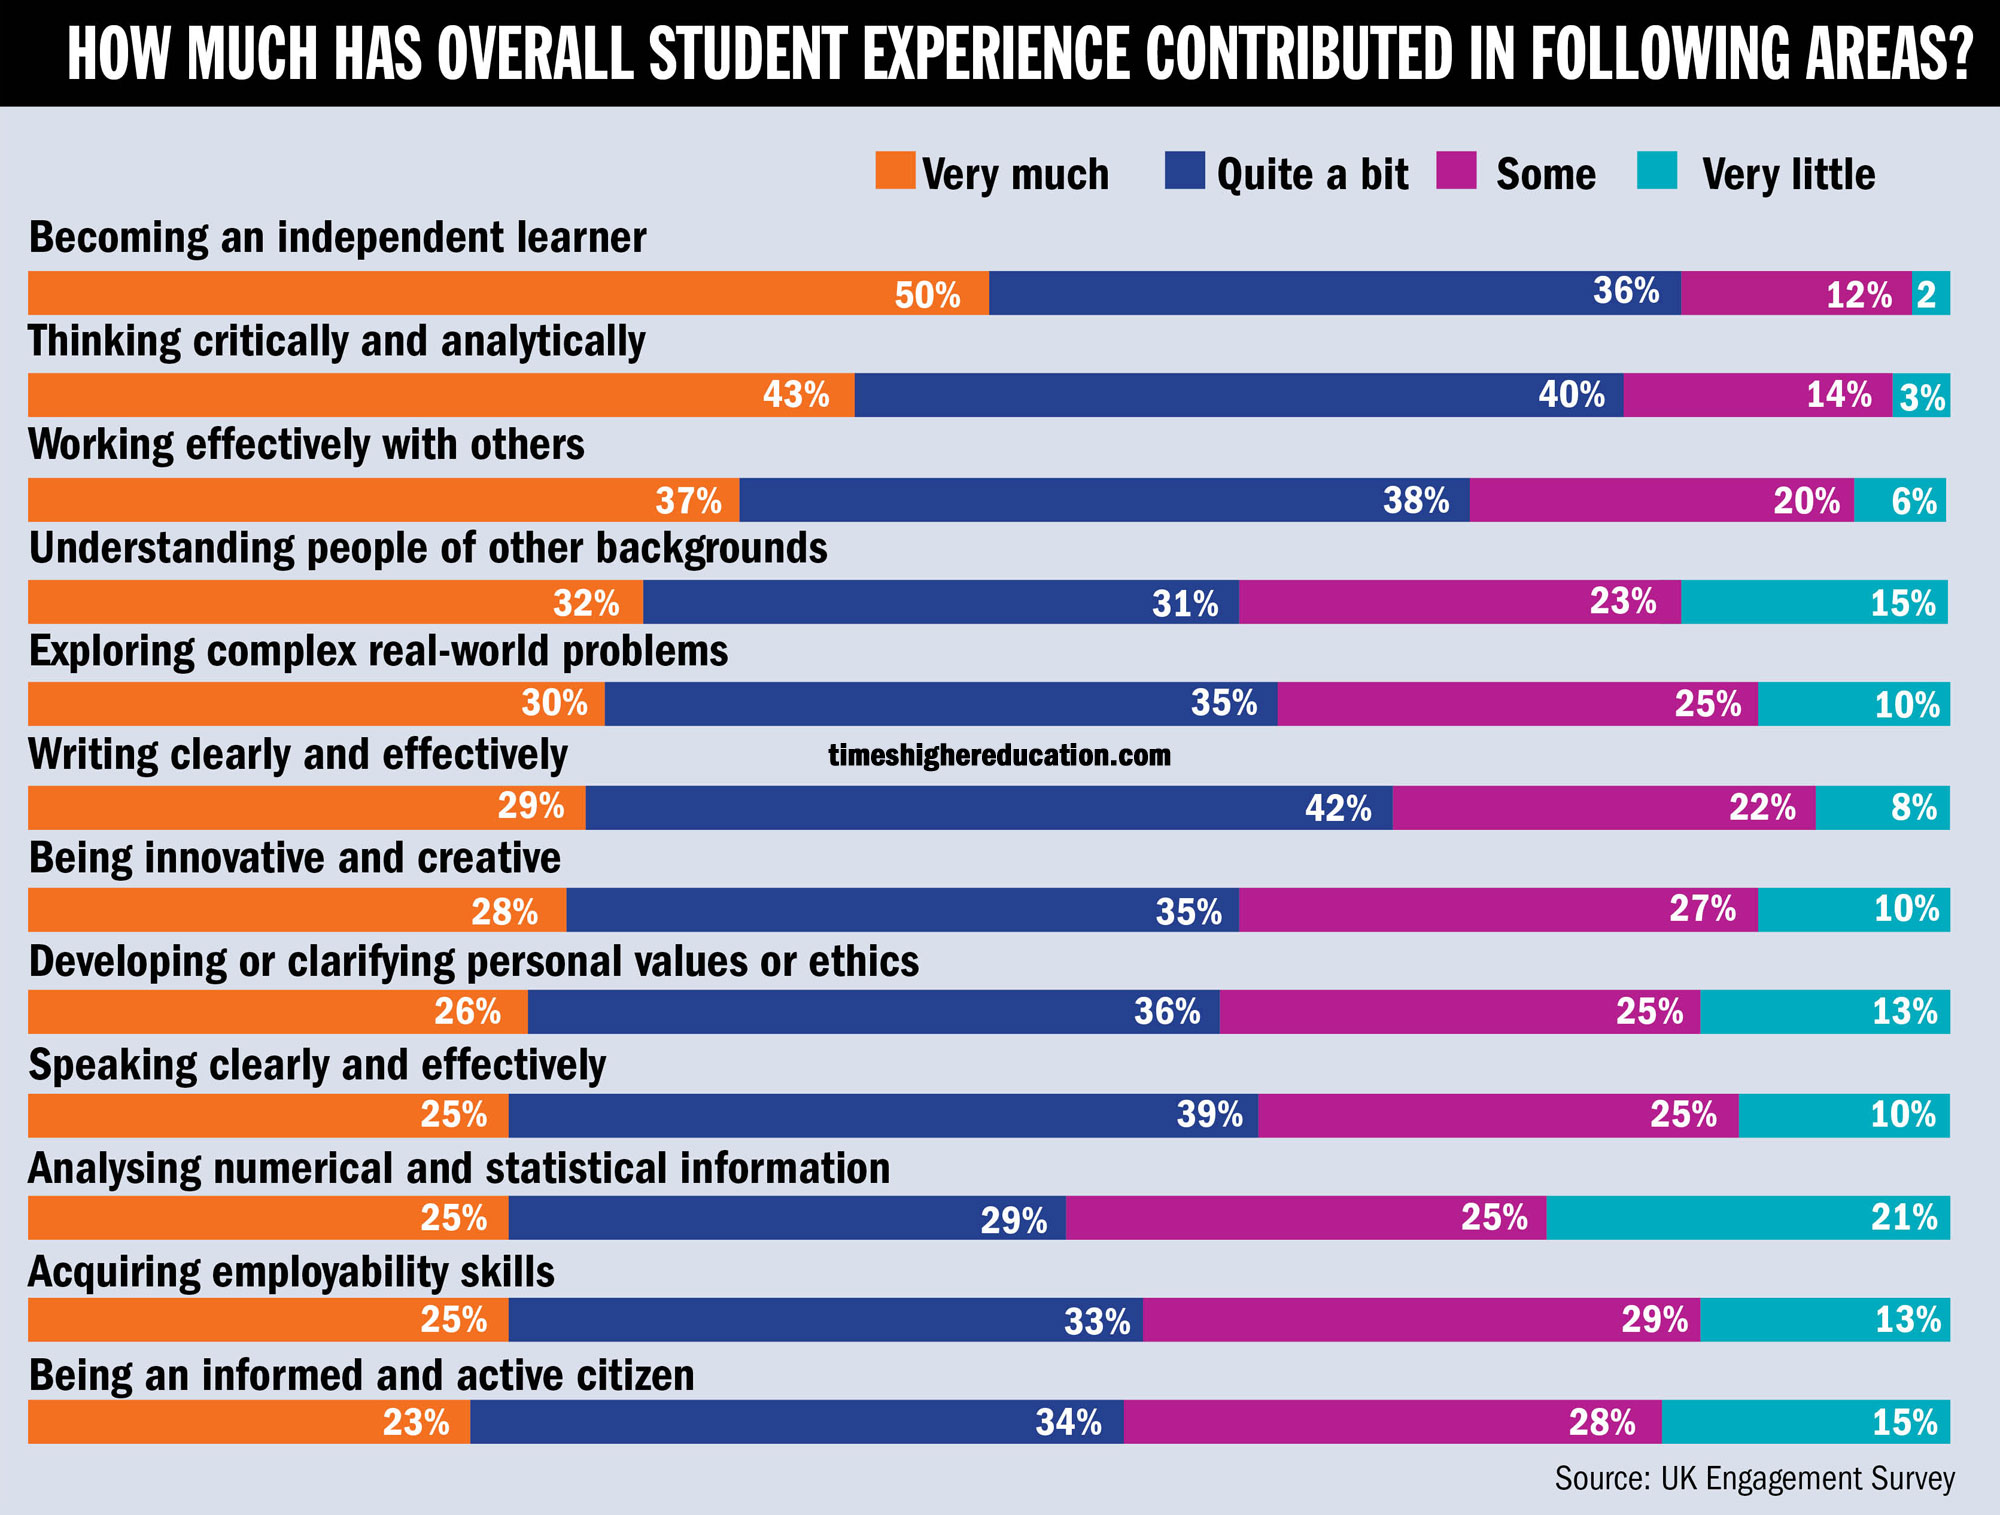 uk engagement survey universities have limited impact on students how much has overall student experience contributed in following areas